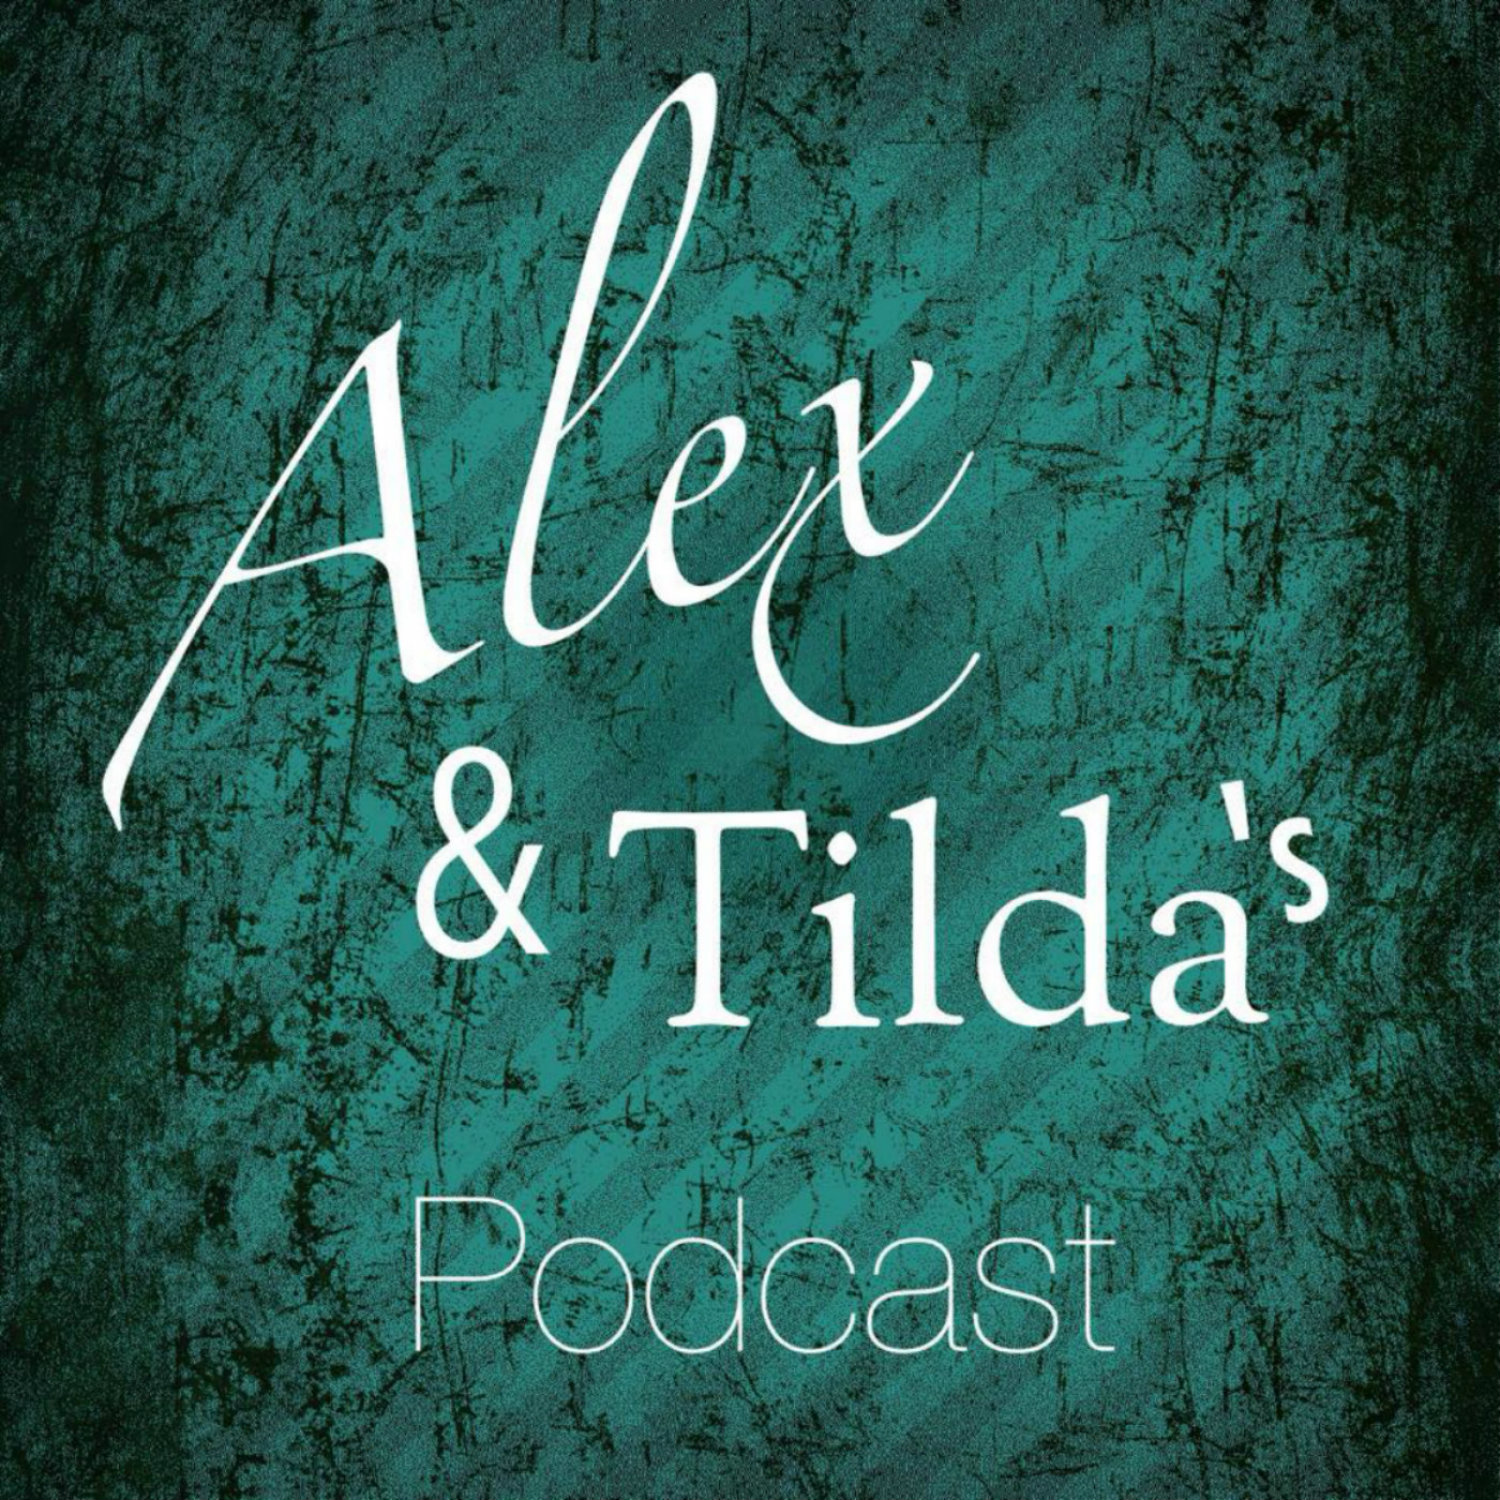 Alex och Tilda's podcast